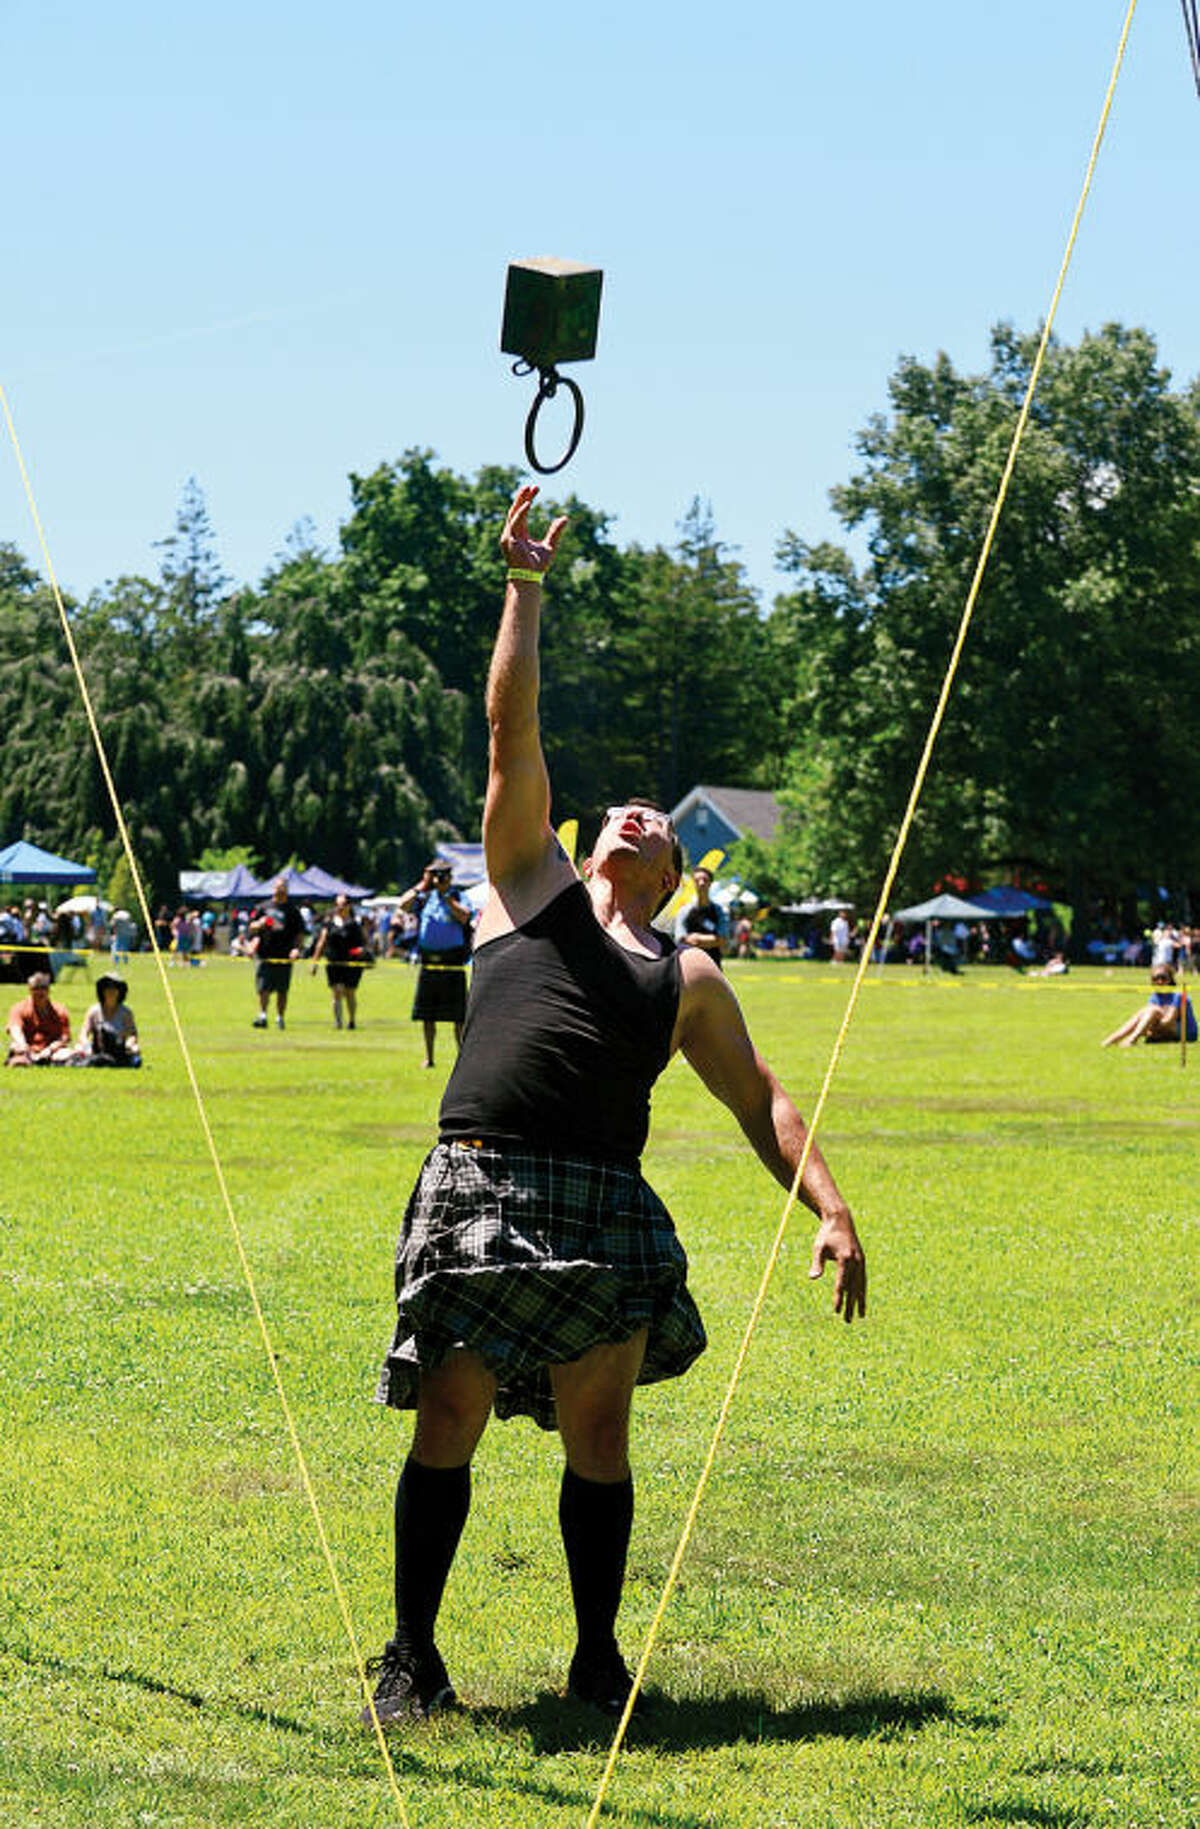 Hour photo / Erik Trautmann Ron Remeika tosses the weight over the bar during the 91st Annual Round Hill Highland Games at Cranbury Park Saturday.